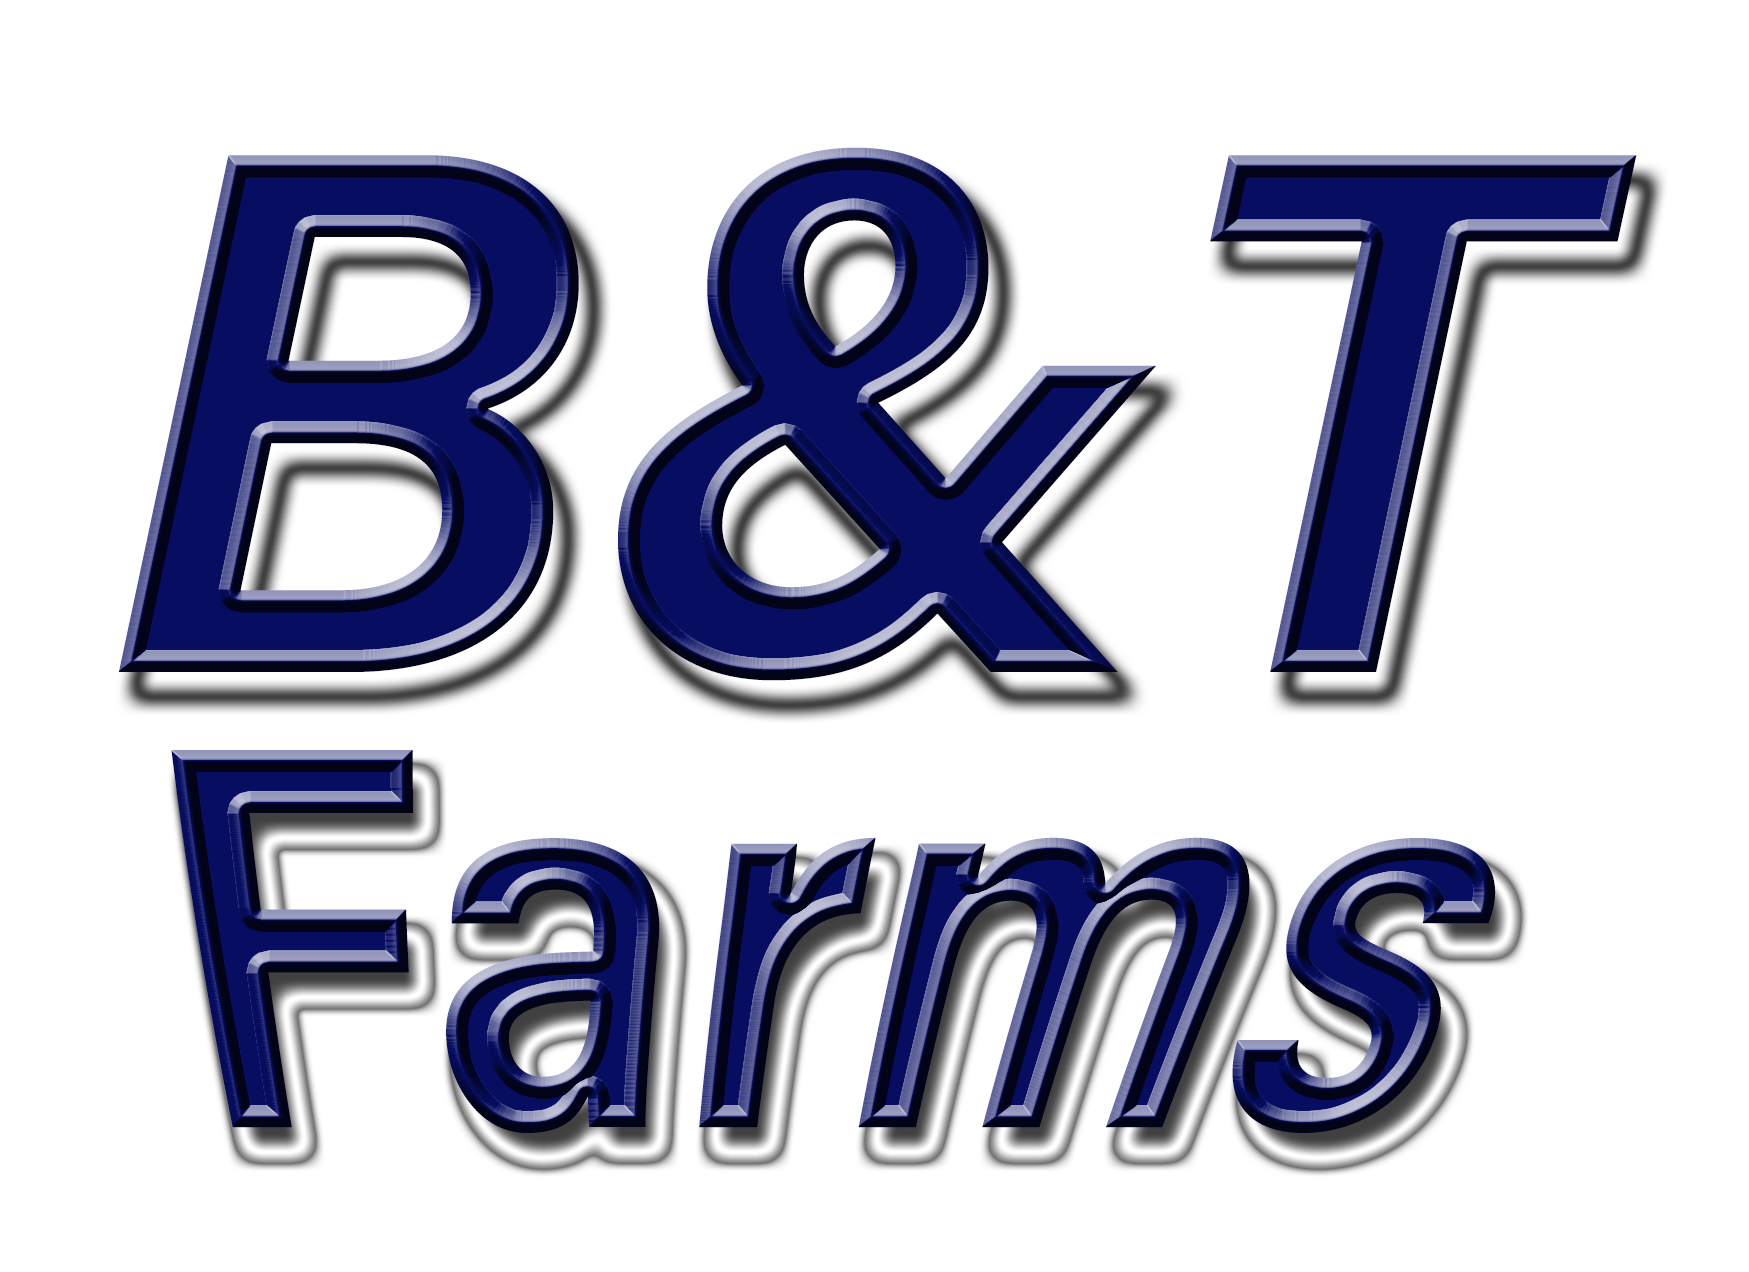 B&T Farms